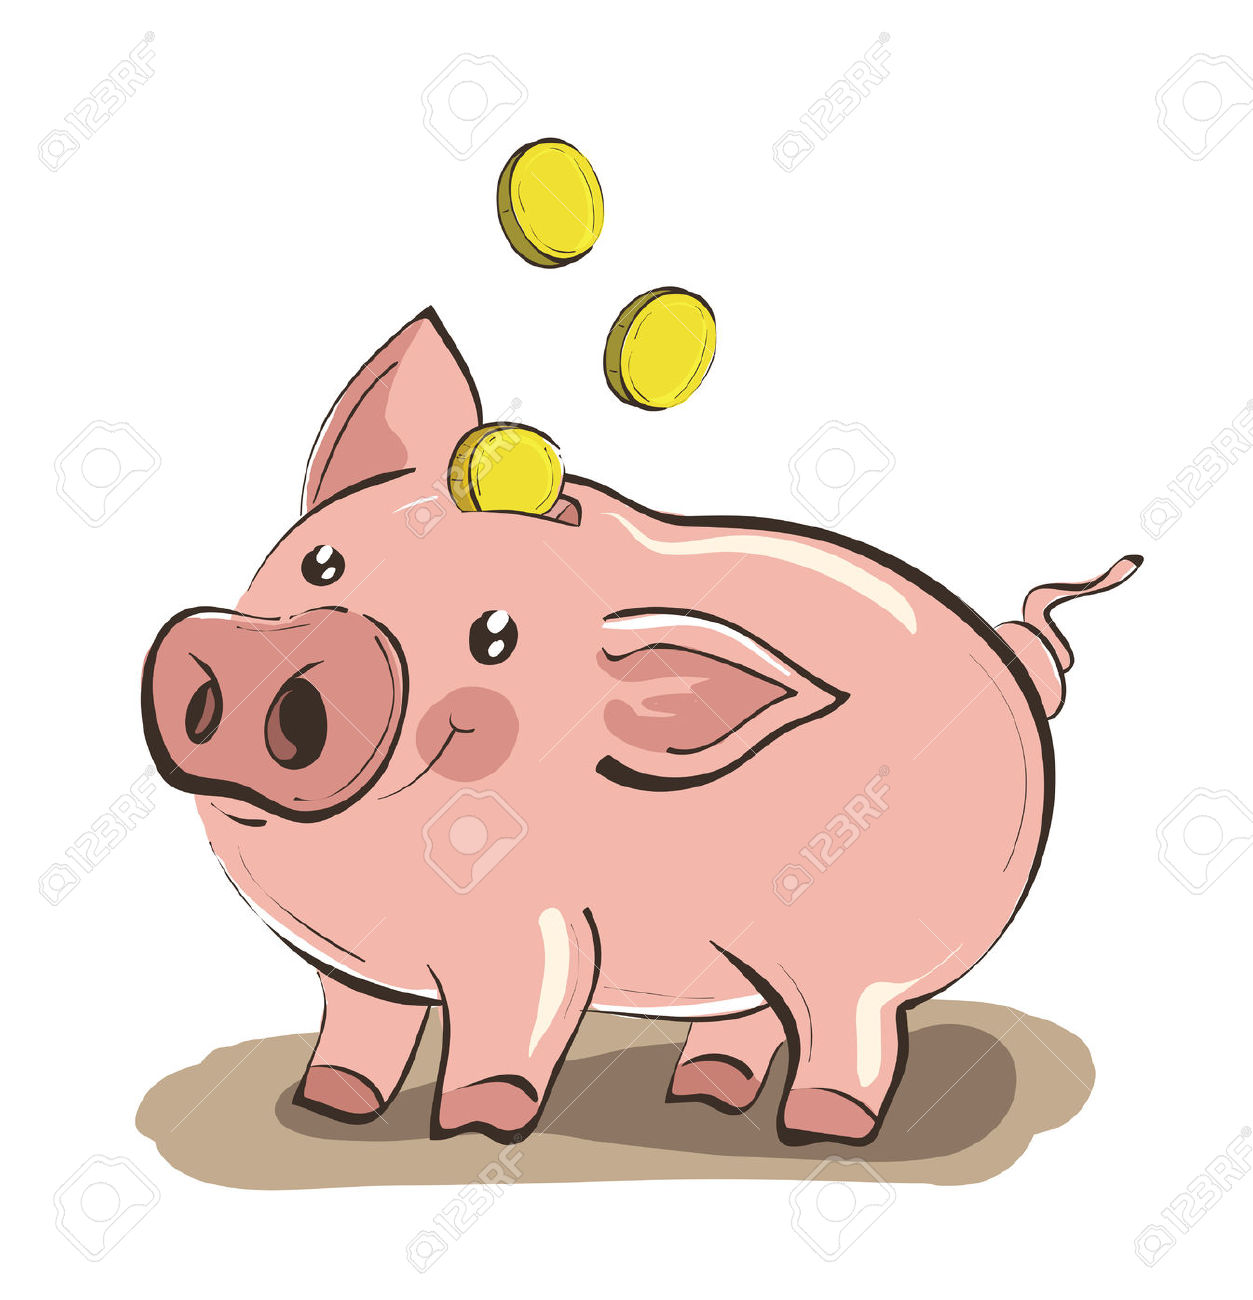 Illustration of hand drawn. Cute piggy bank clipart